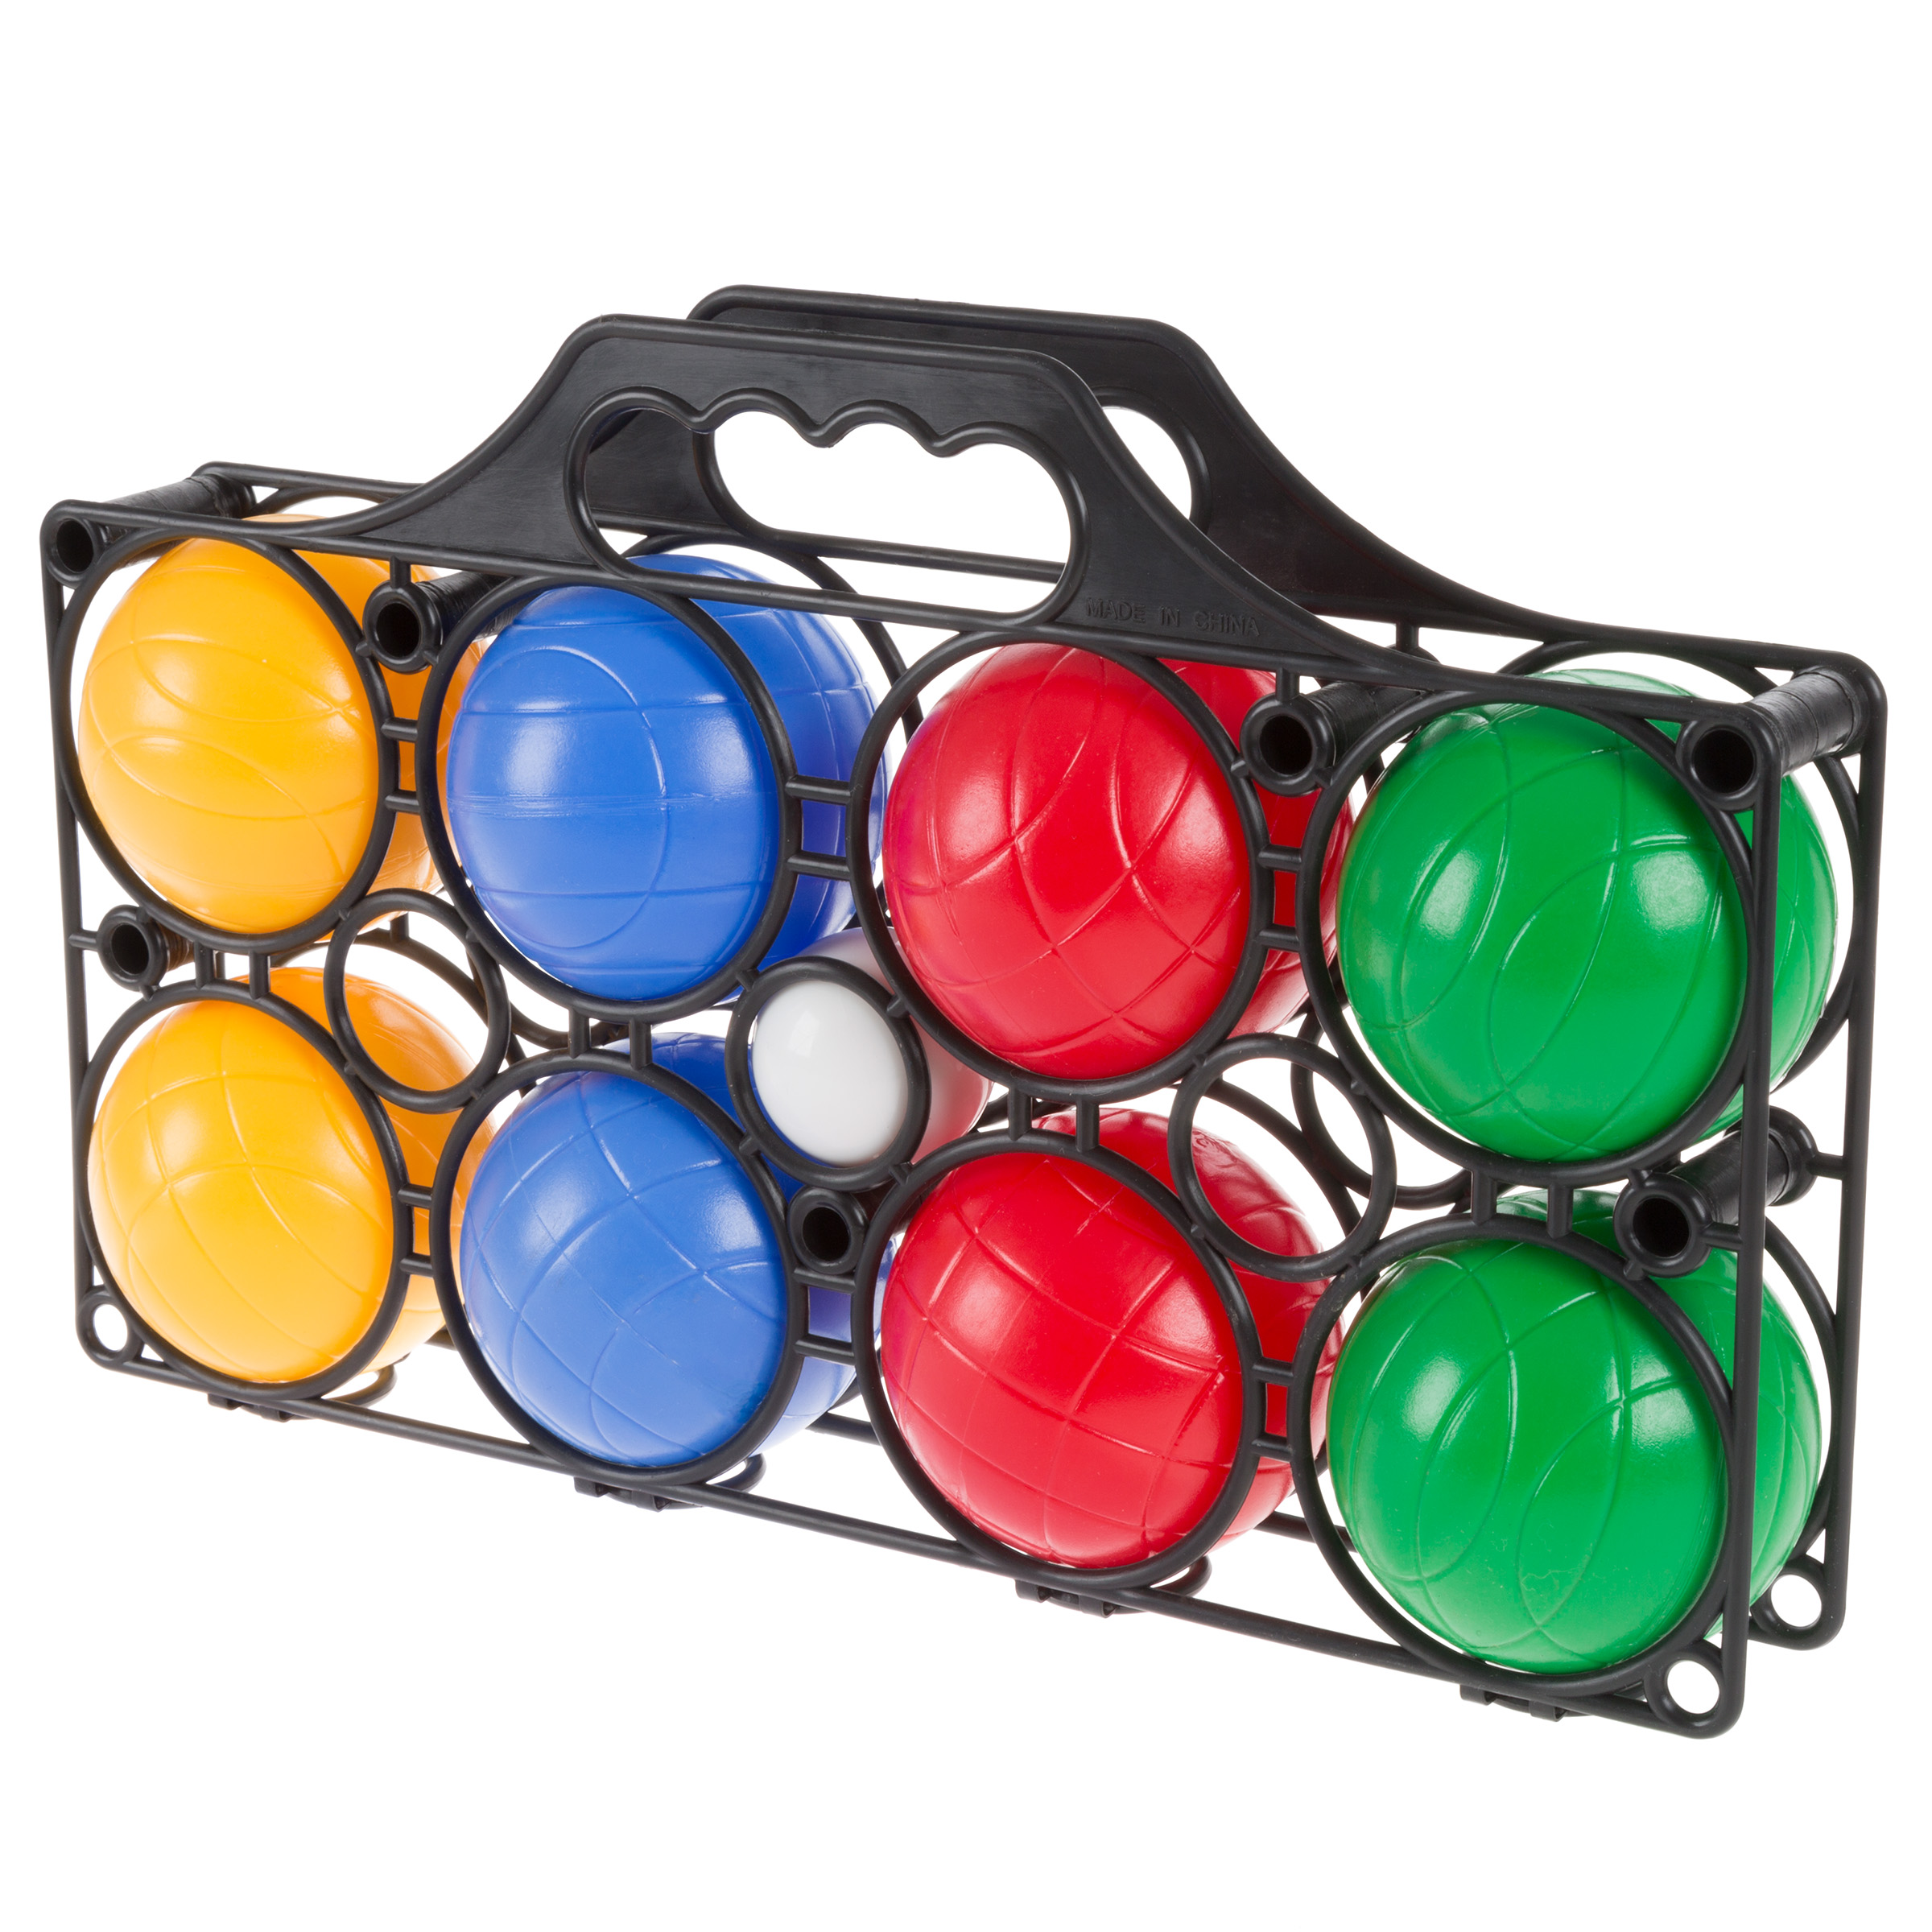 Beginner Bocce Ball Set with 8 Colorful Bocce Balls, Pallino and Carrying Case- Classic Outdoor Game for Kids, Adults and Family By Hey! Play!